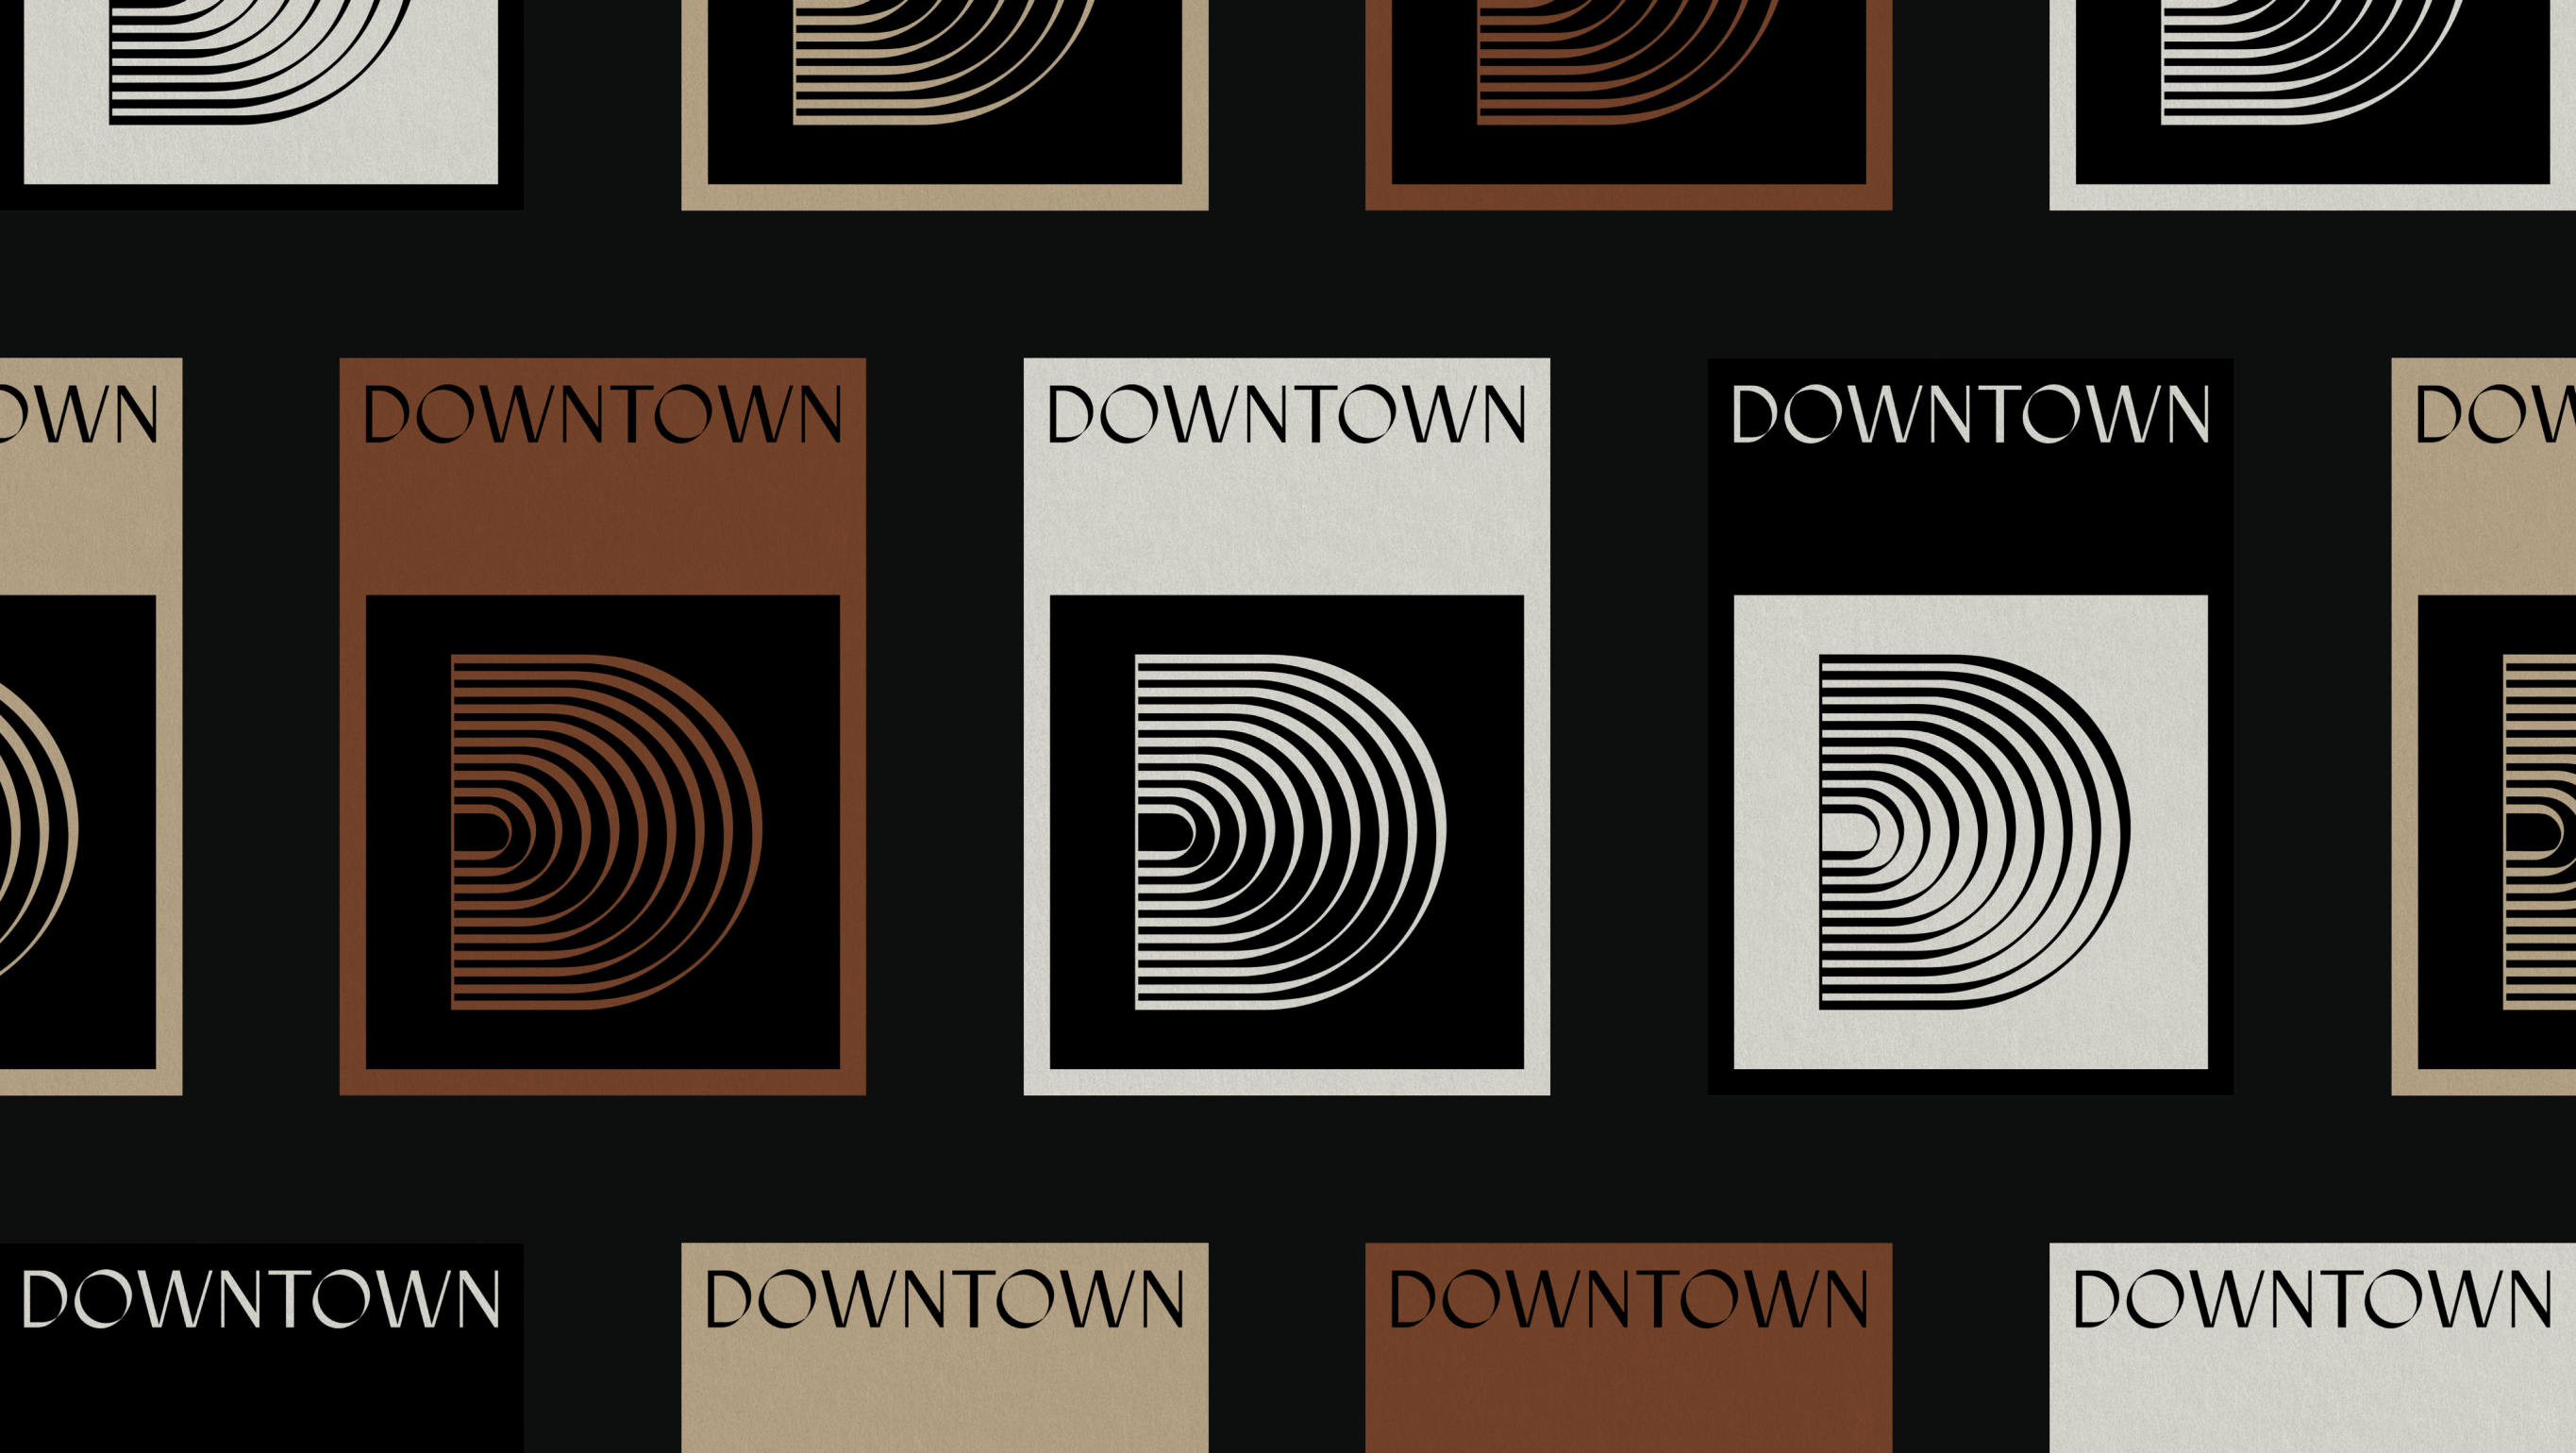 Downtown Music Group secondary mark prints, various posters featuring custom D secondary mark, designed by RoAndCo Studio